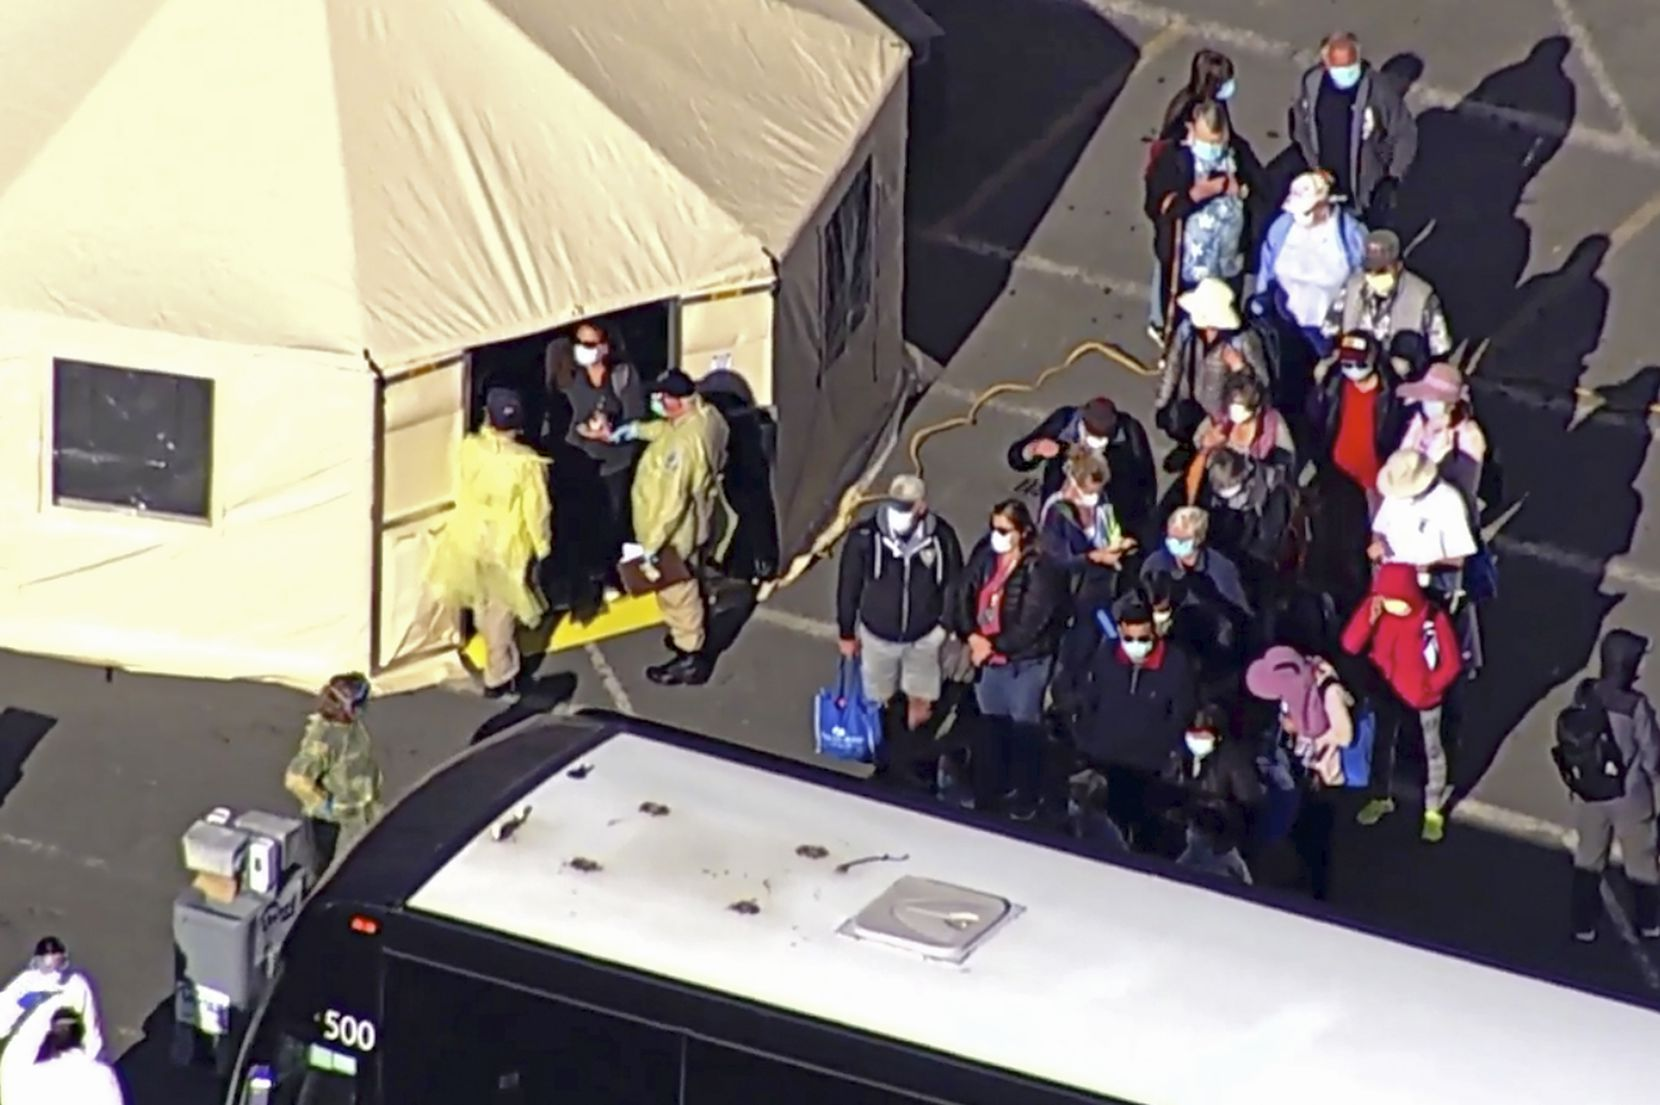 On March 10, passengers waited to board buses after leaving the Grand Princess cruise ship at the Port of Oakland in Oakland, Calif.